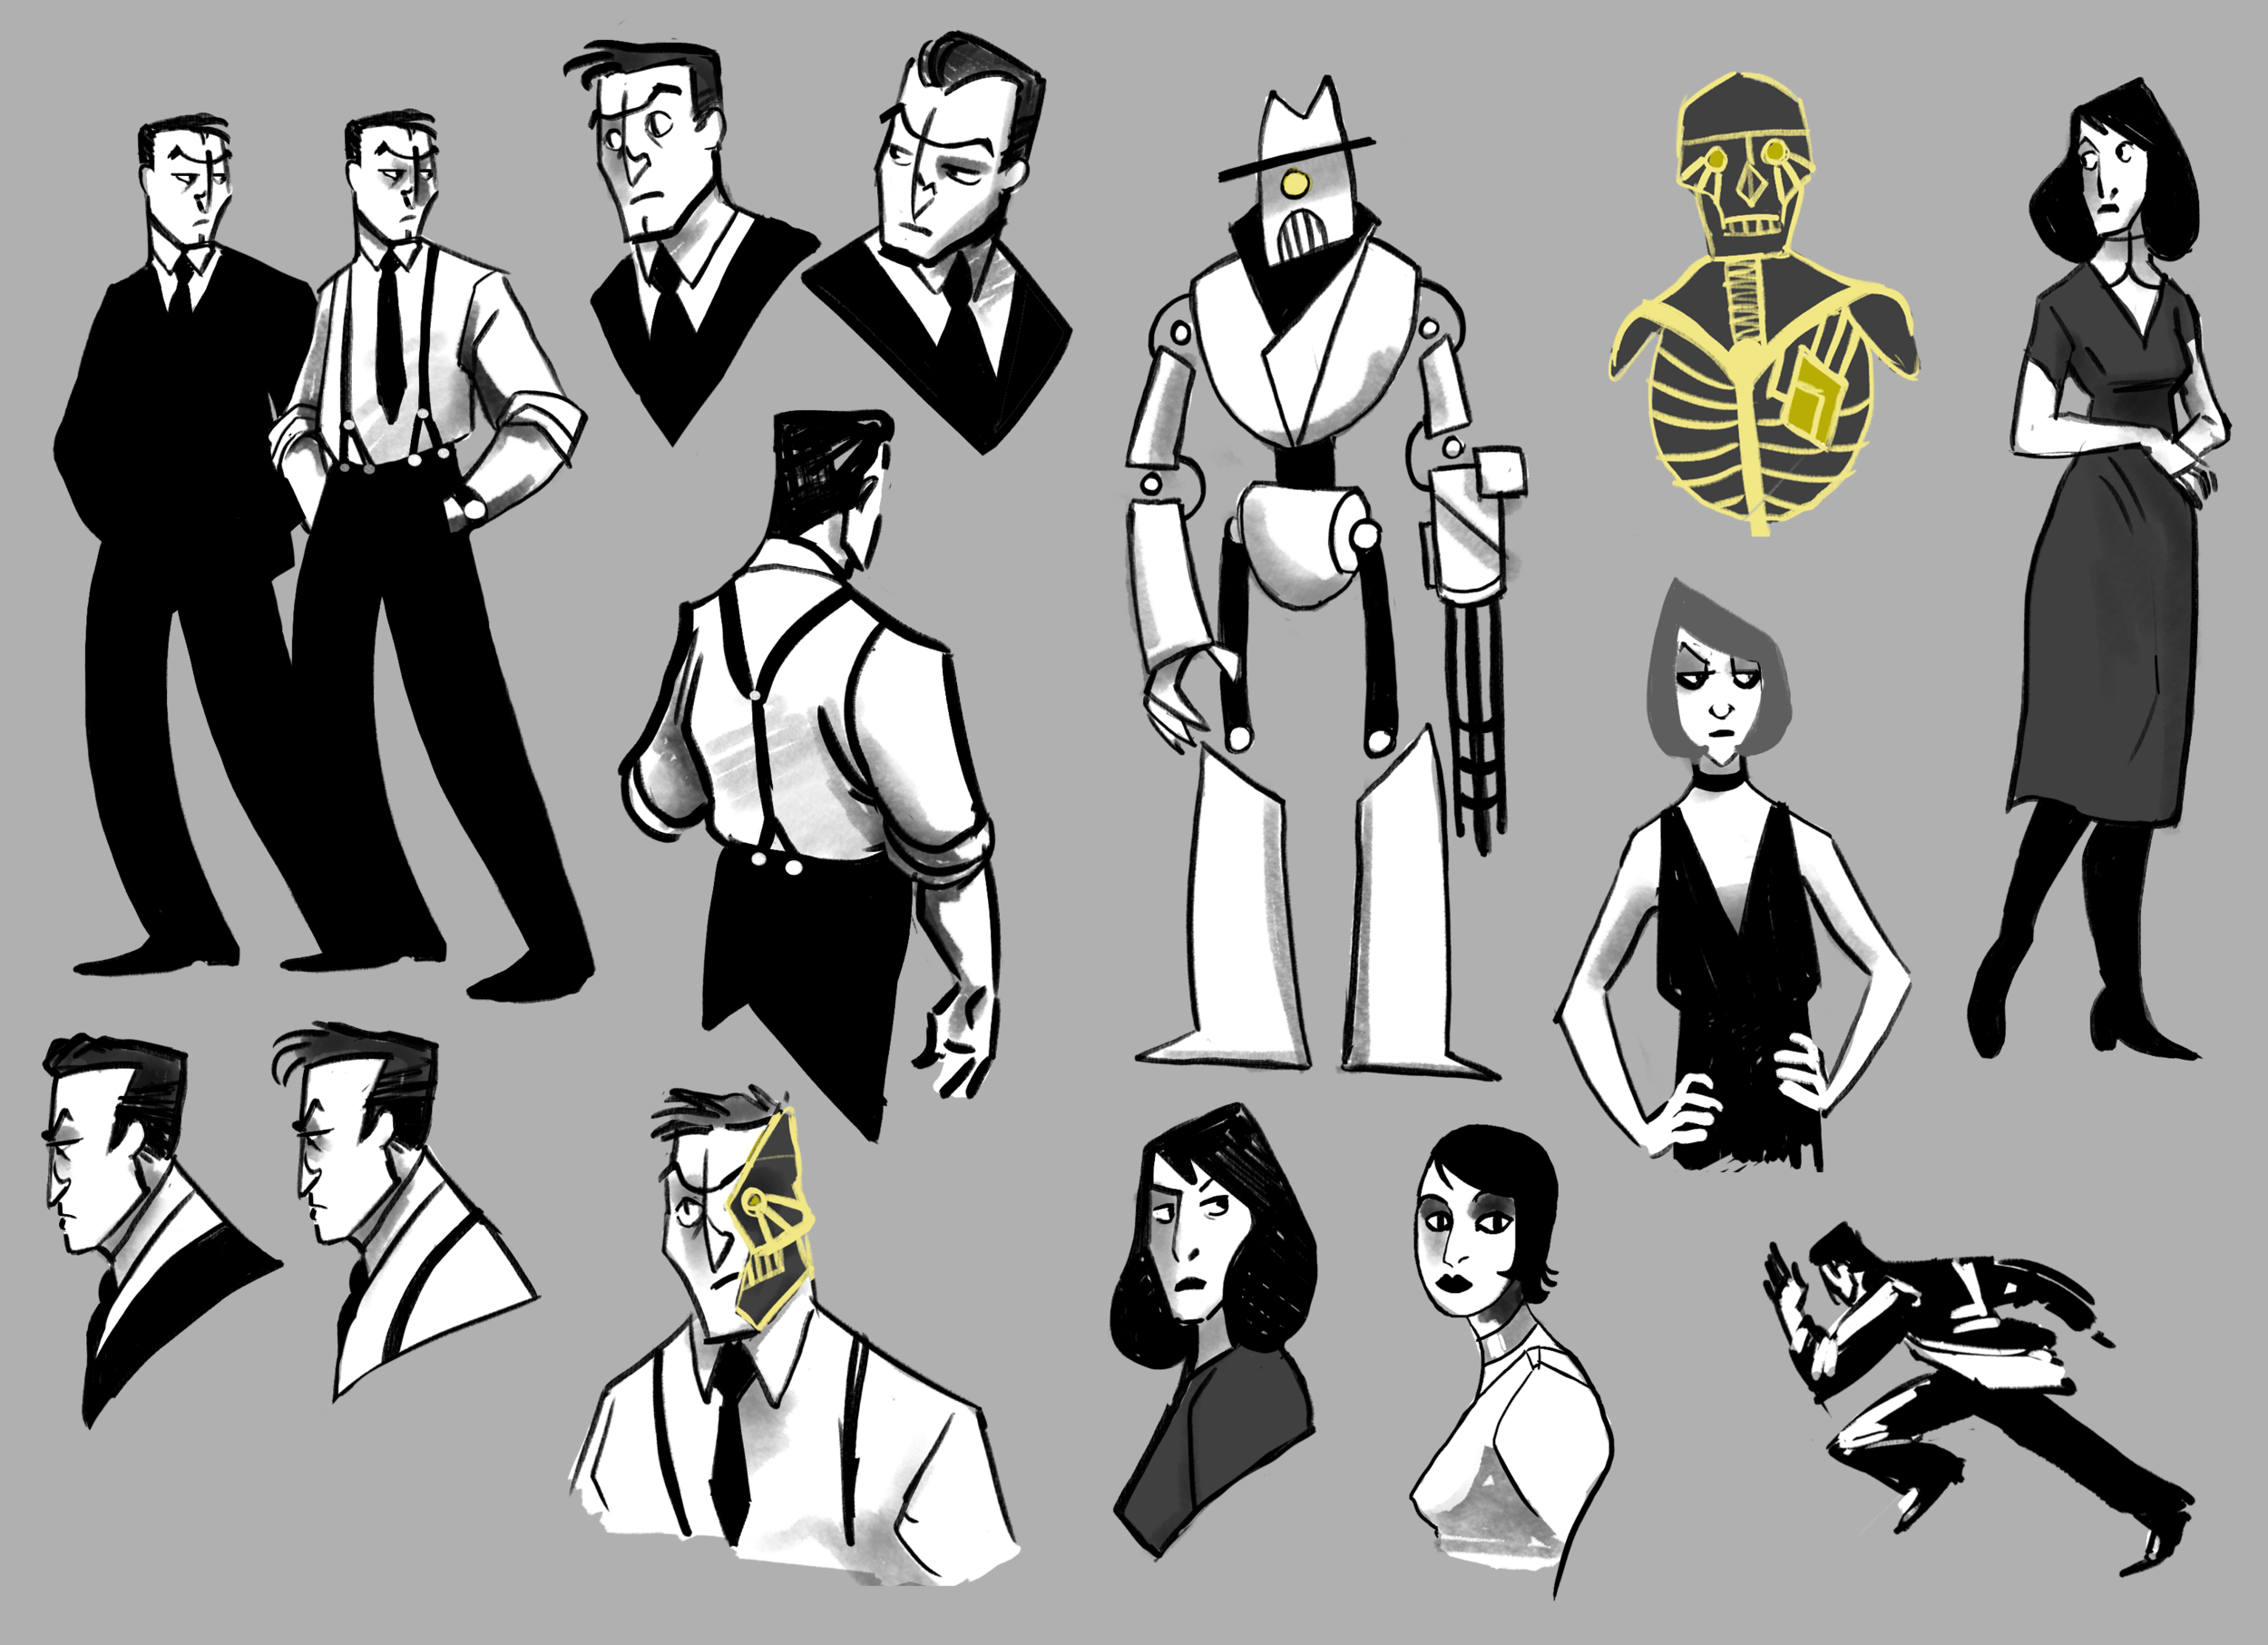 skeleton key_character designs.png